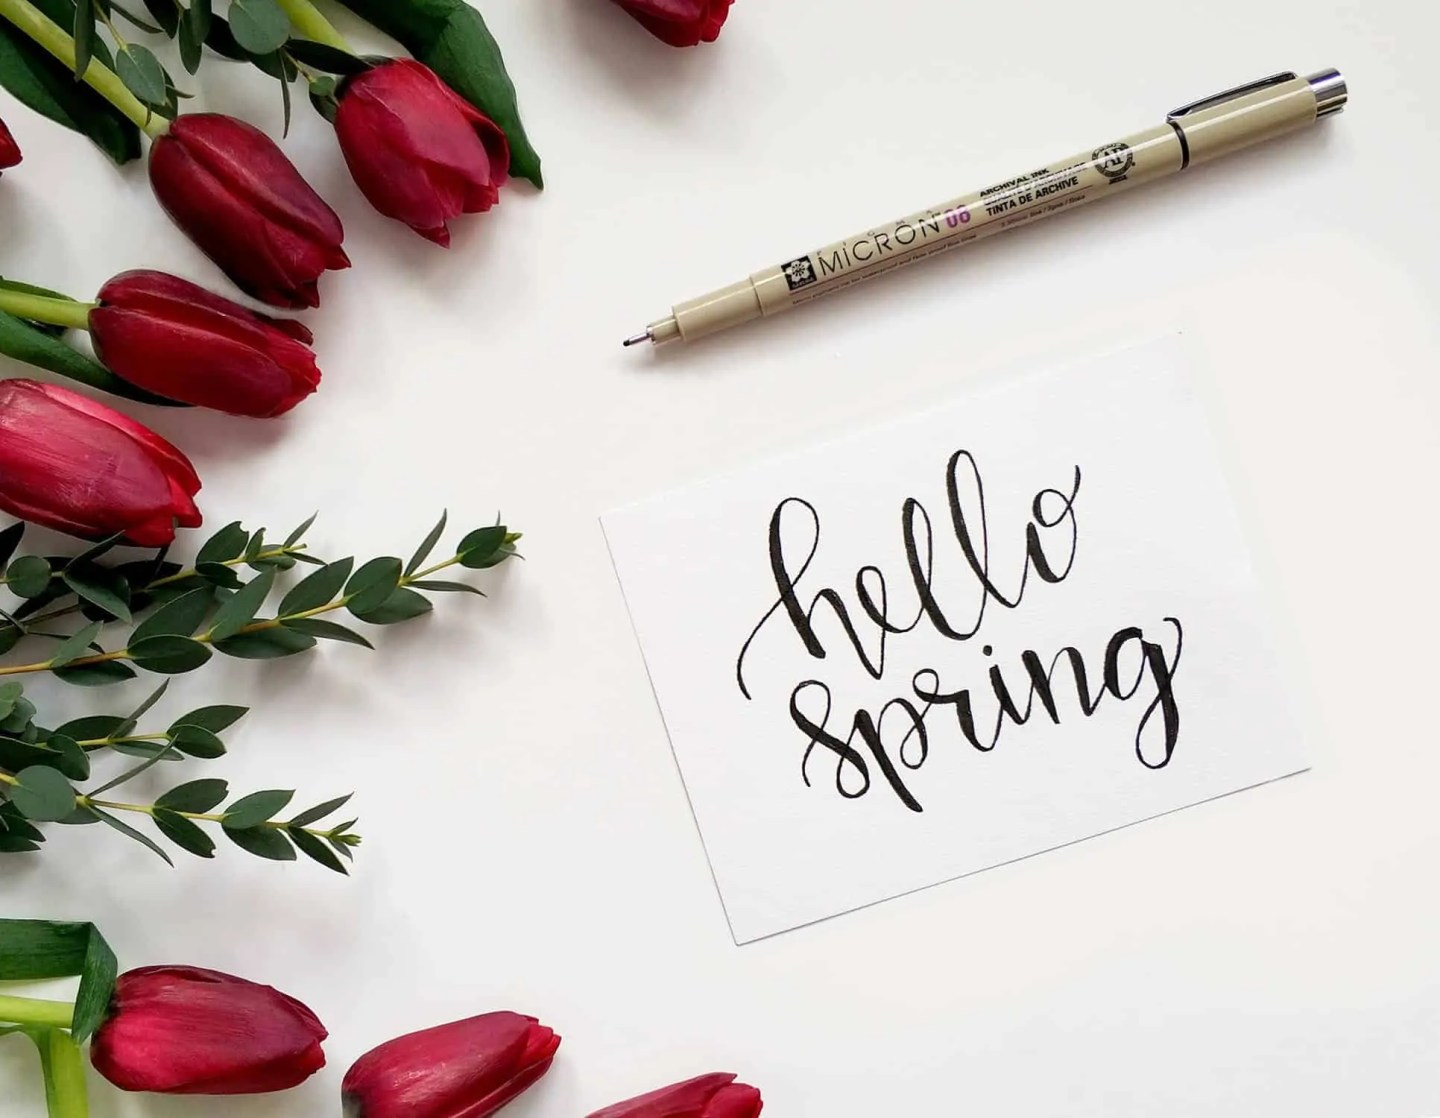 What I'm most looking forward to about Spring